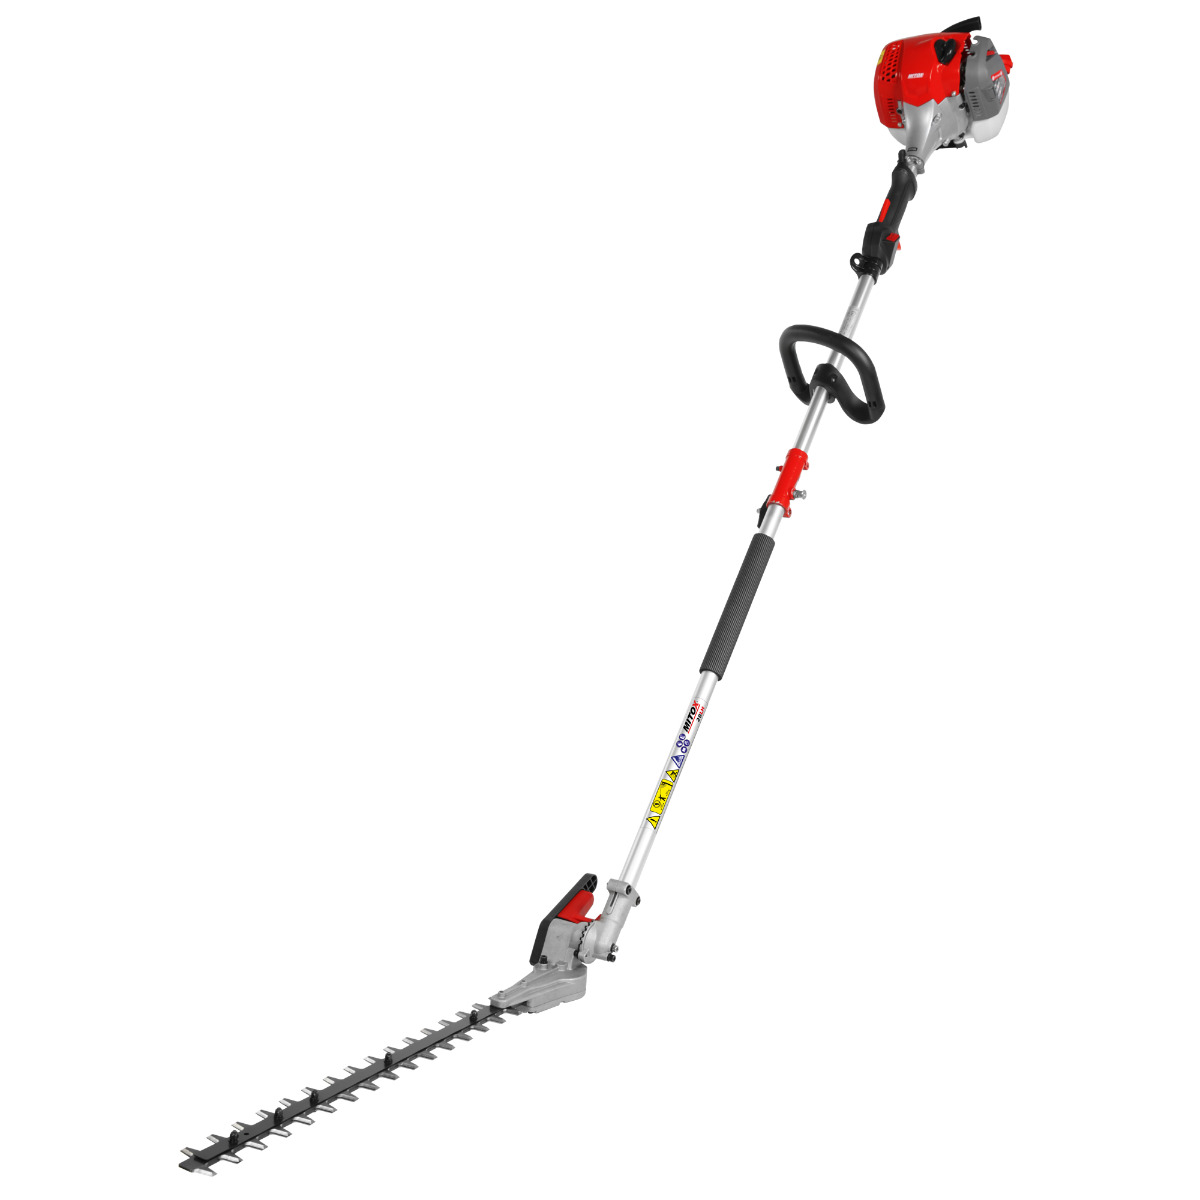 Mitox 28LH-A Select Long Reach Hedge Trimmer